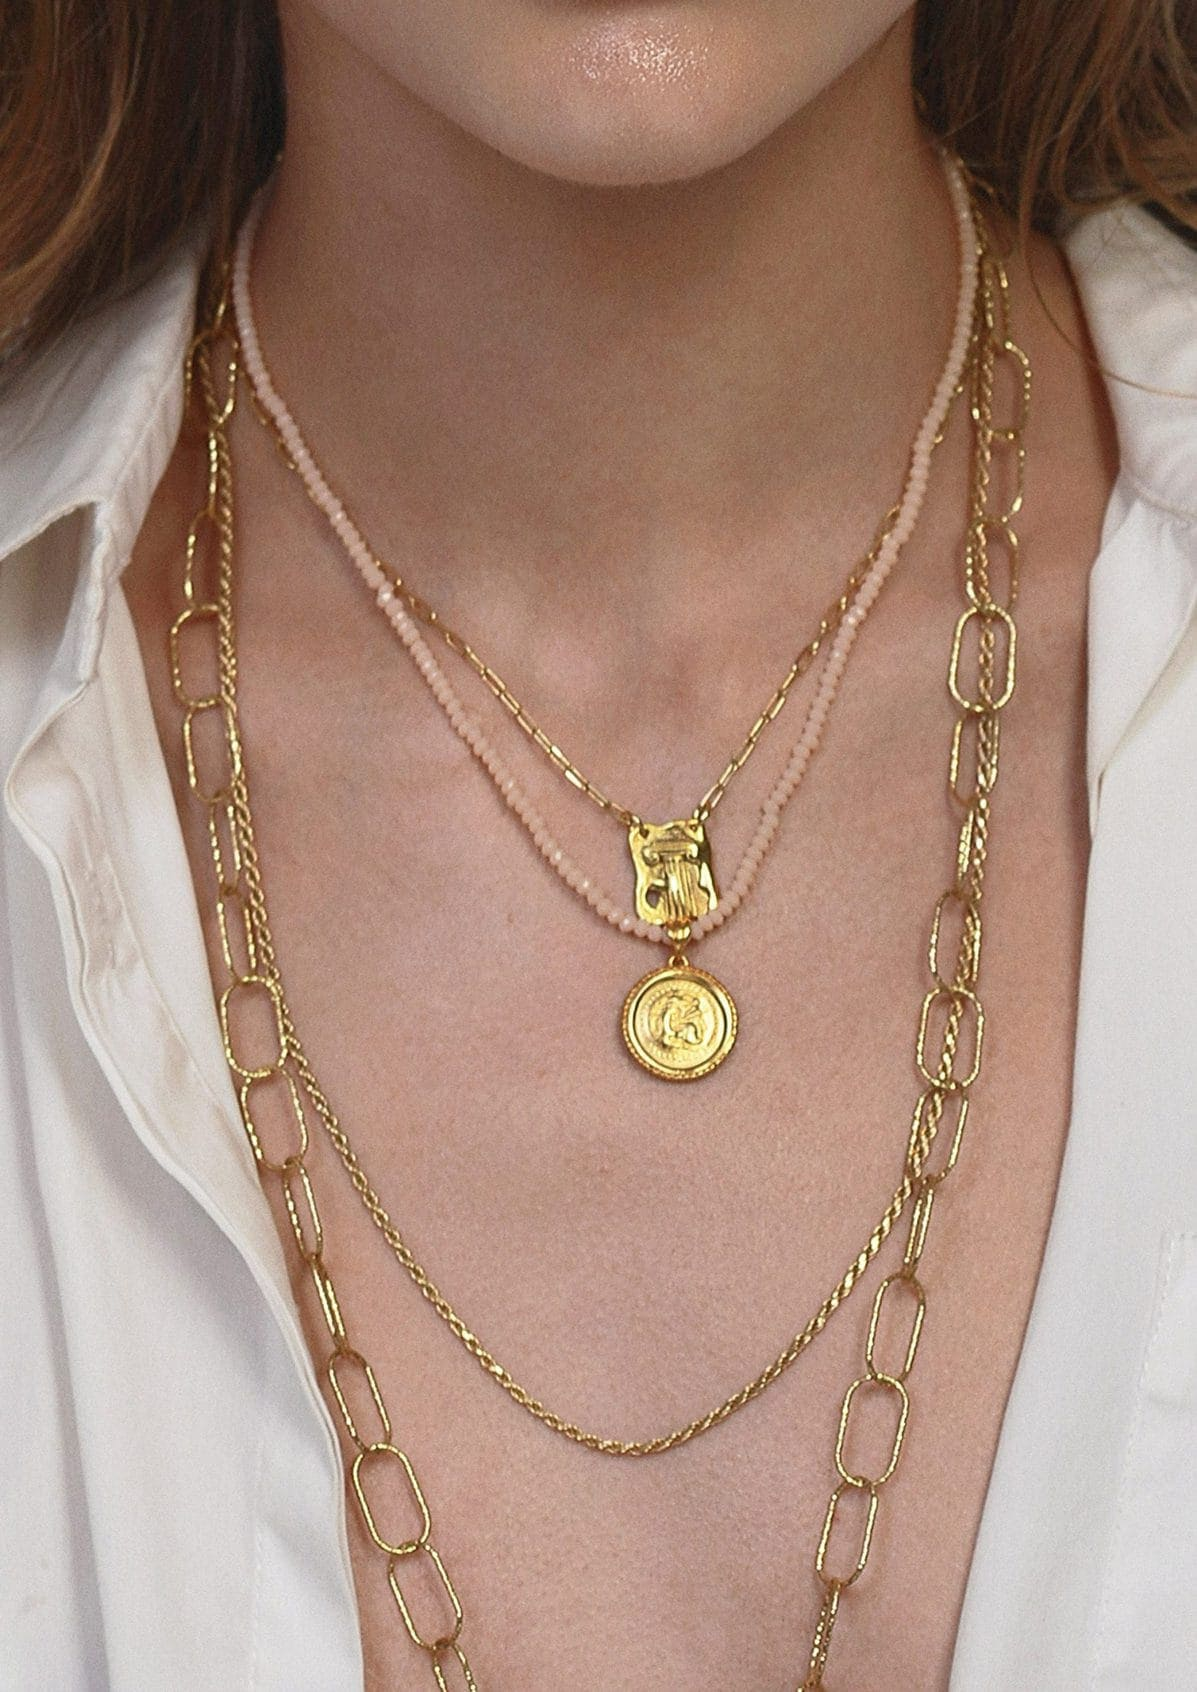 HERCULES CHAMPAGNE CRYSTAL NECKLACE